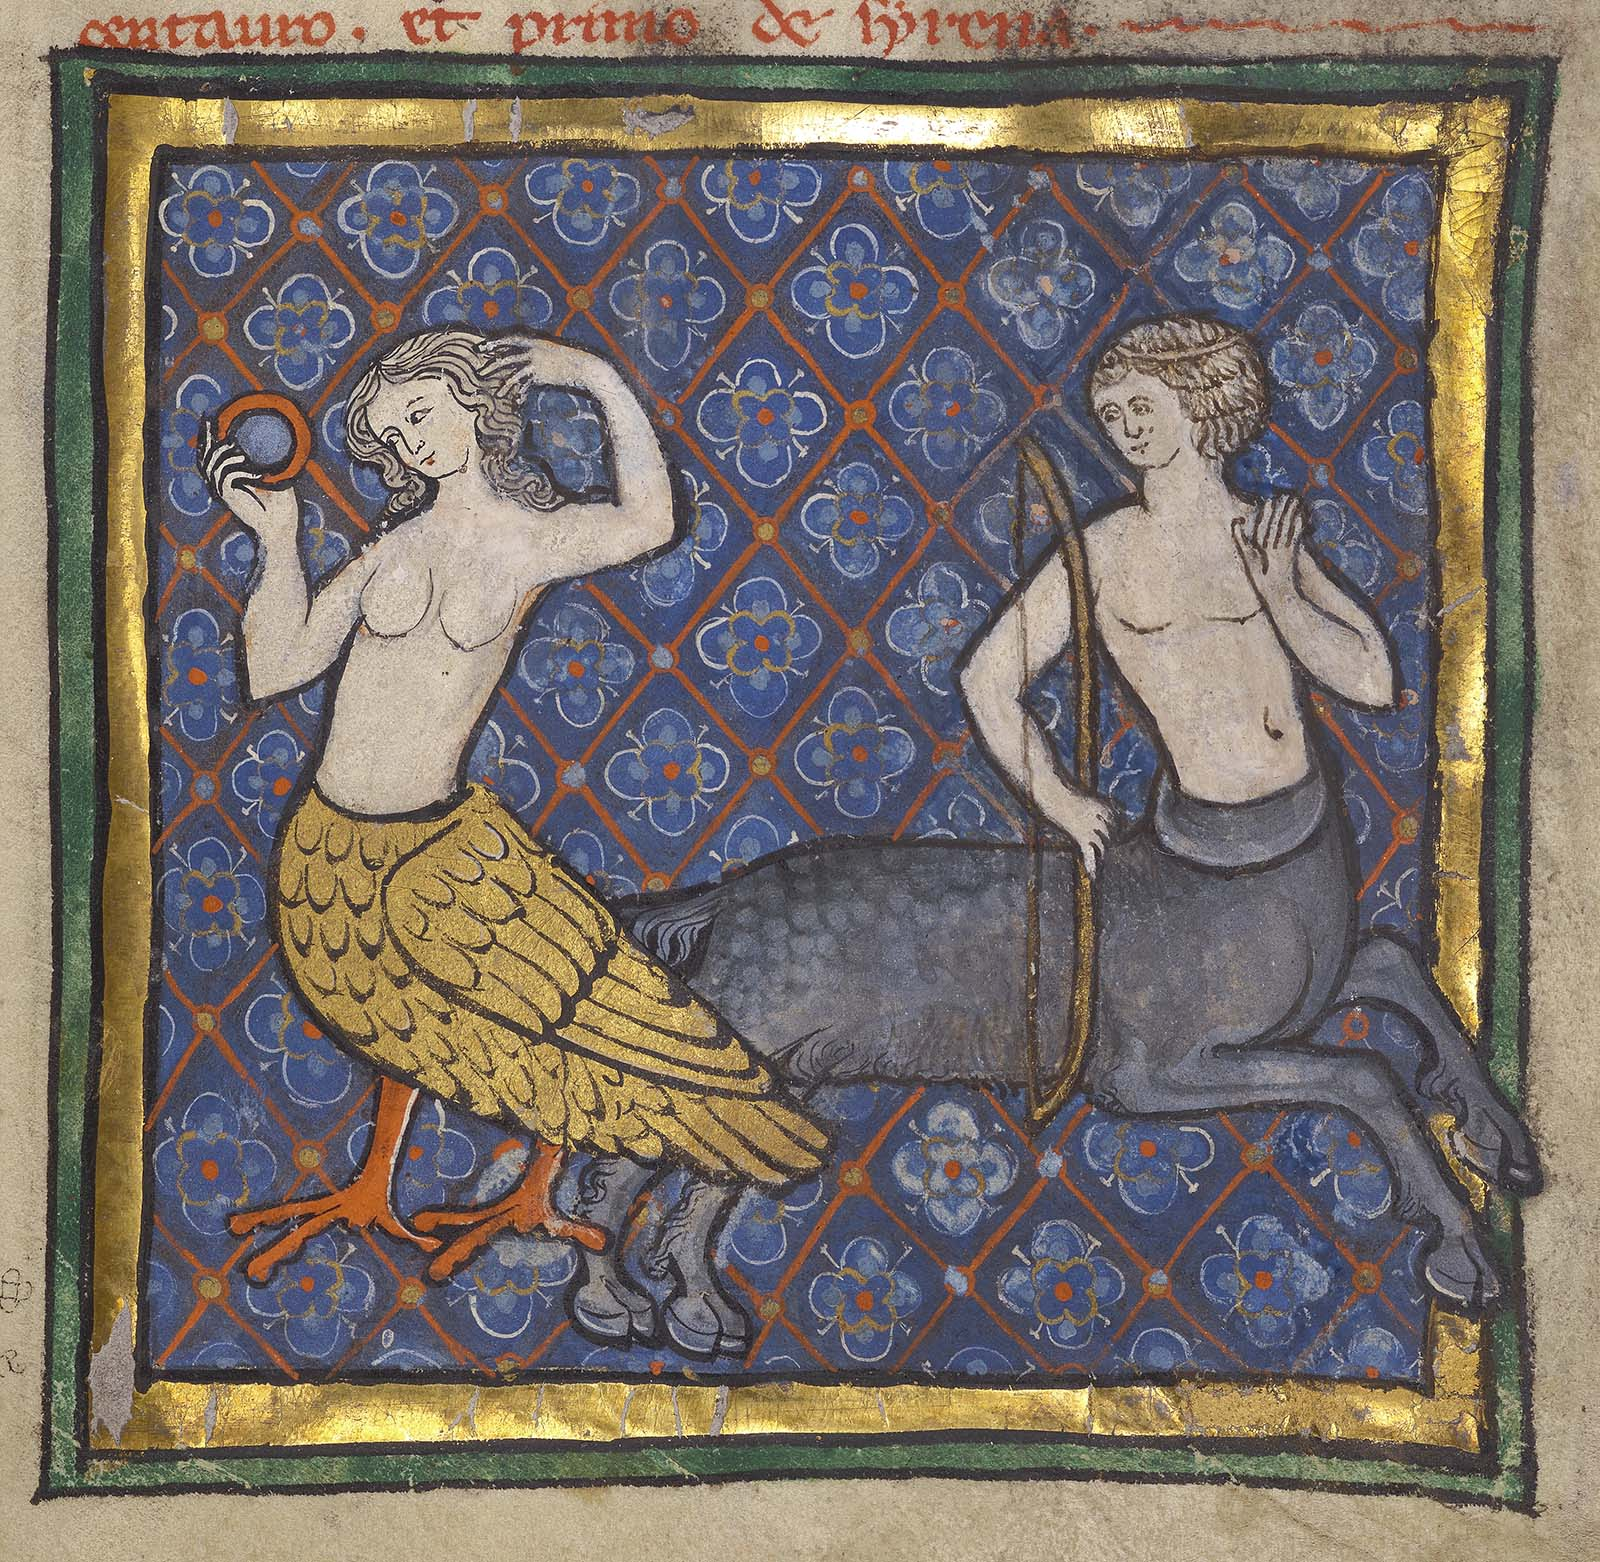 A part-bird, part-woman siren plays with her hair as she looks into a mirror. A centaur holding a bow gazes at her.